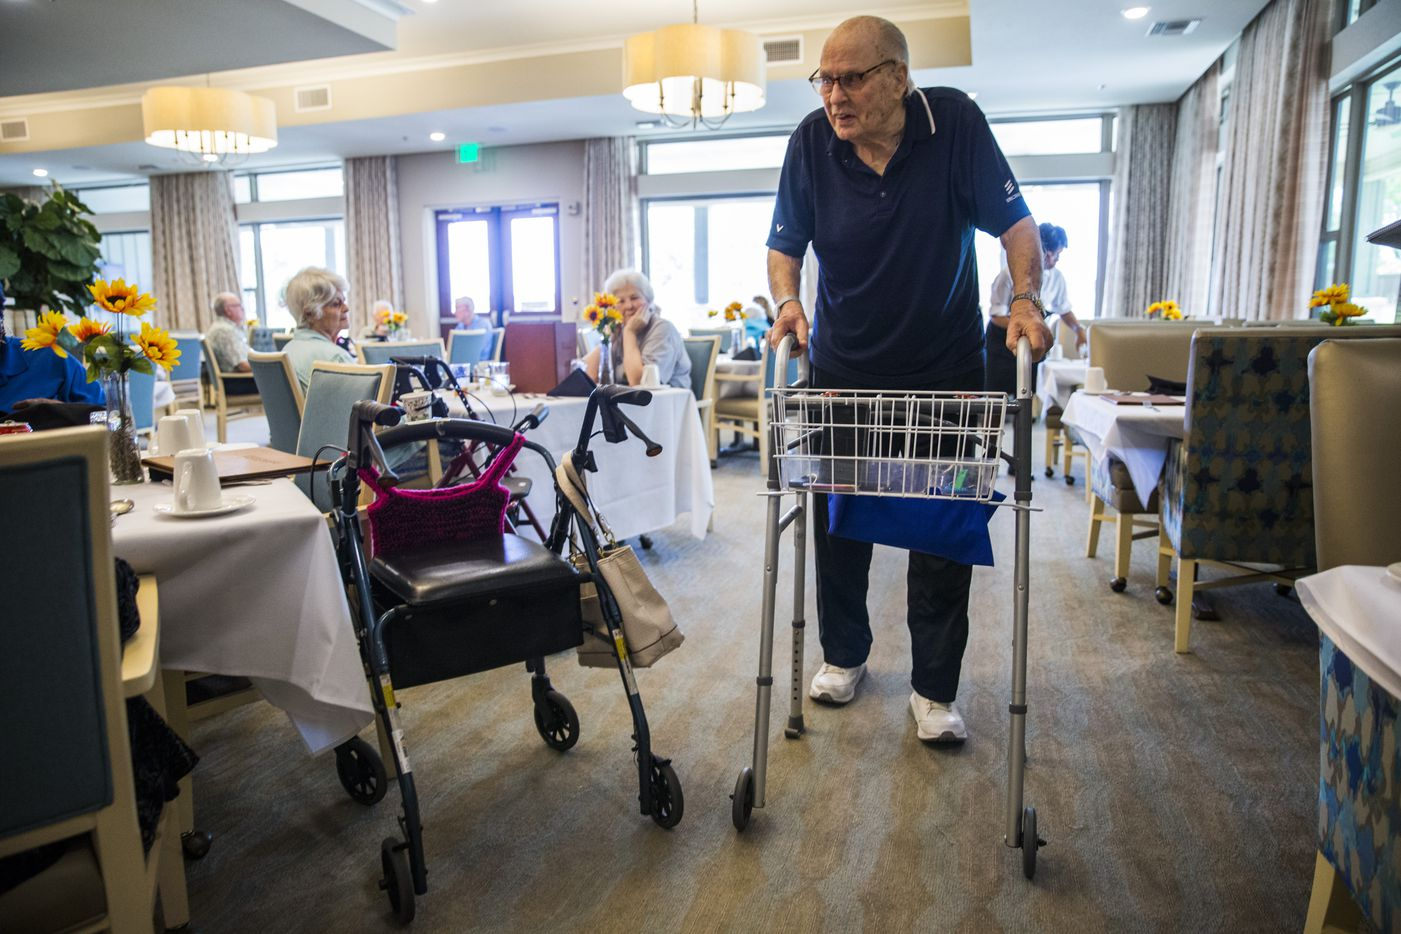 Bob Stiegler greets other residents in the dining room after eating lunch at The Village at Mapleshade in Plano this month.